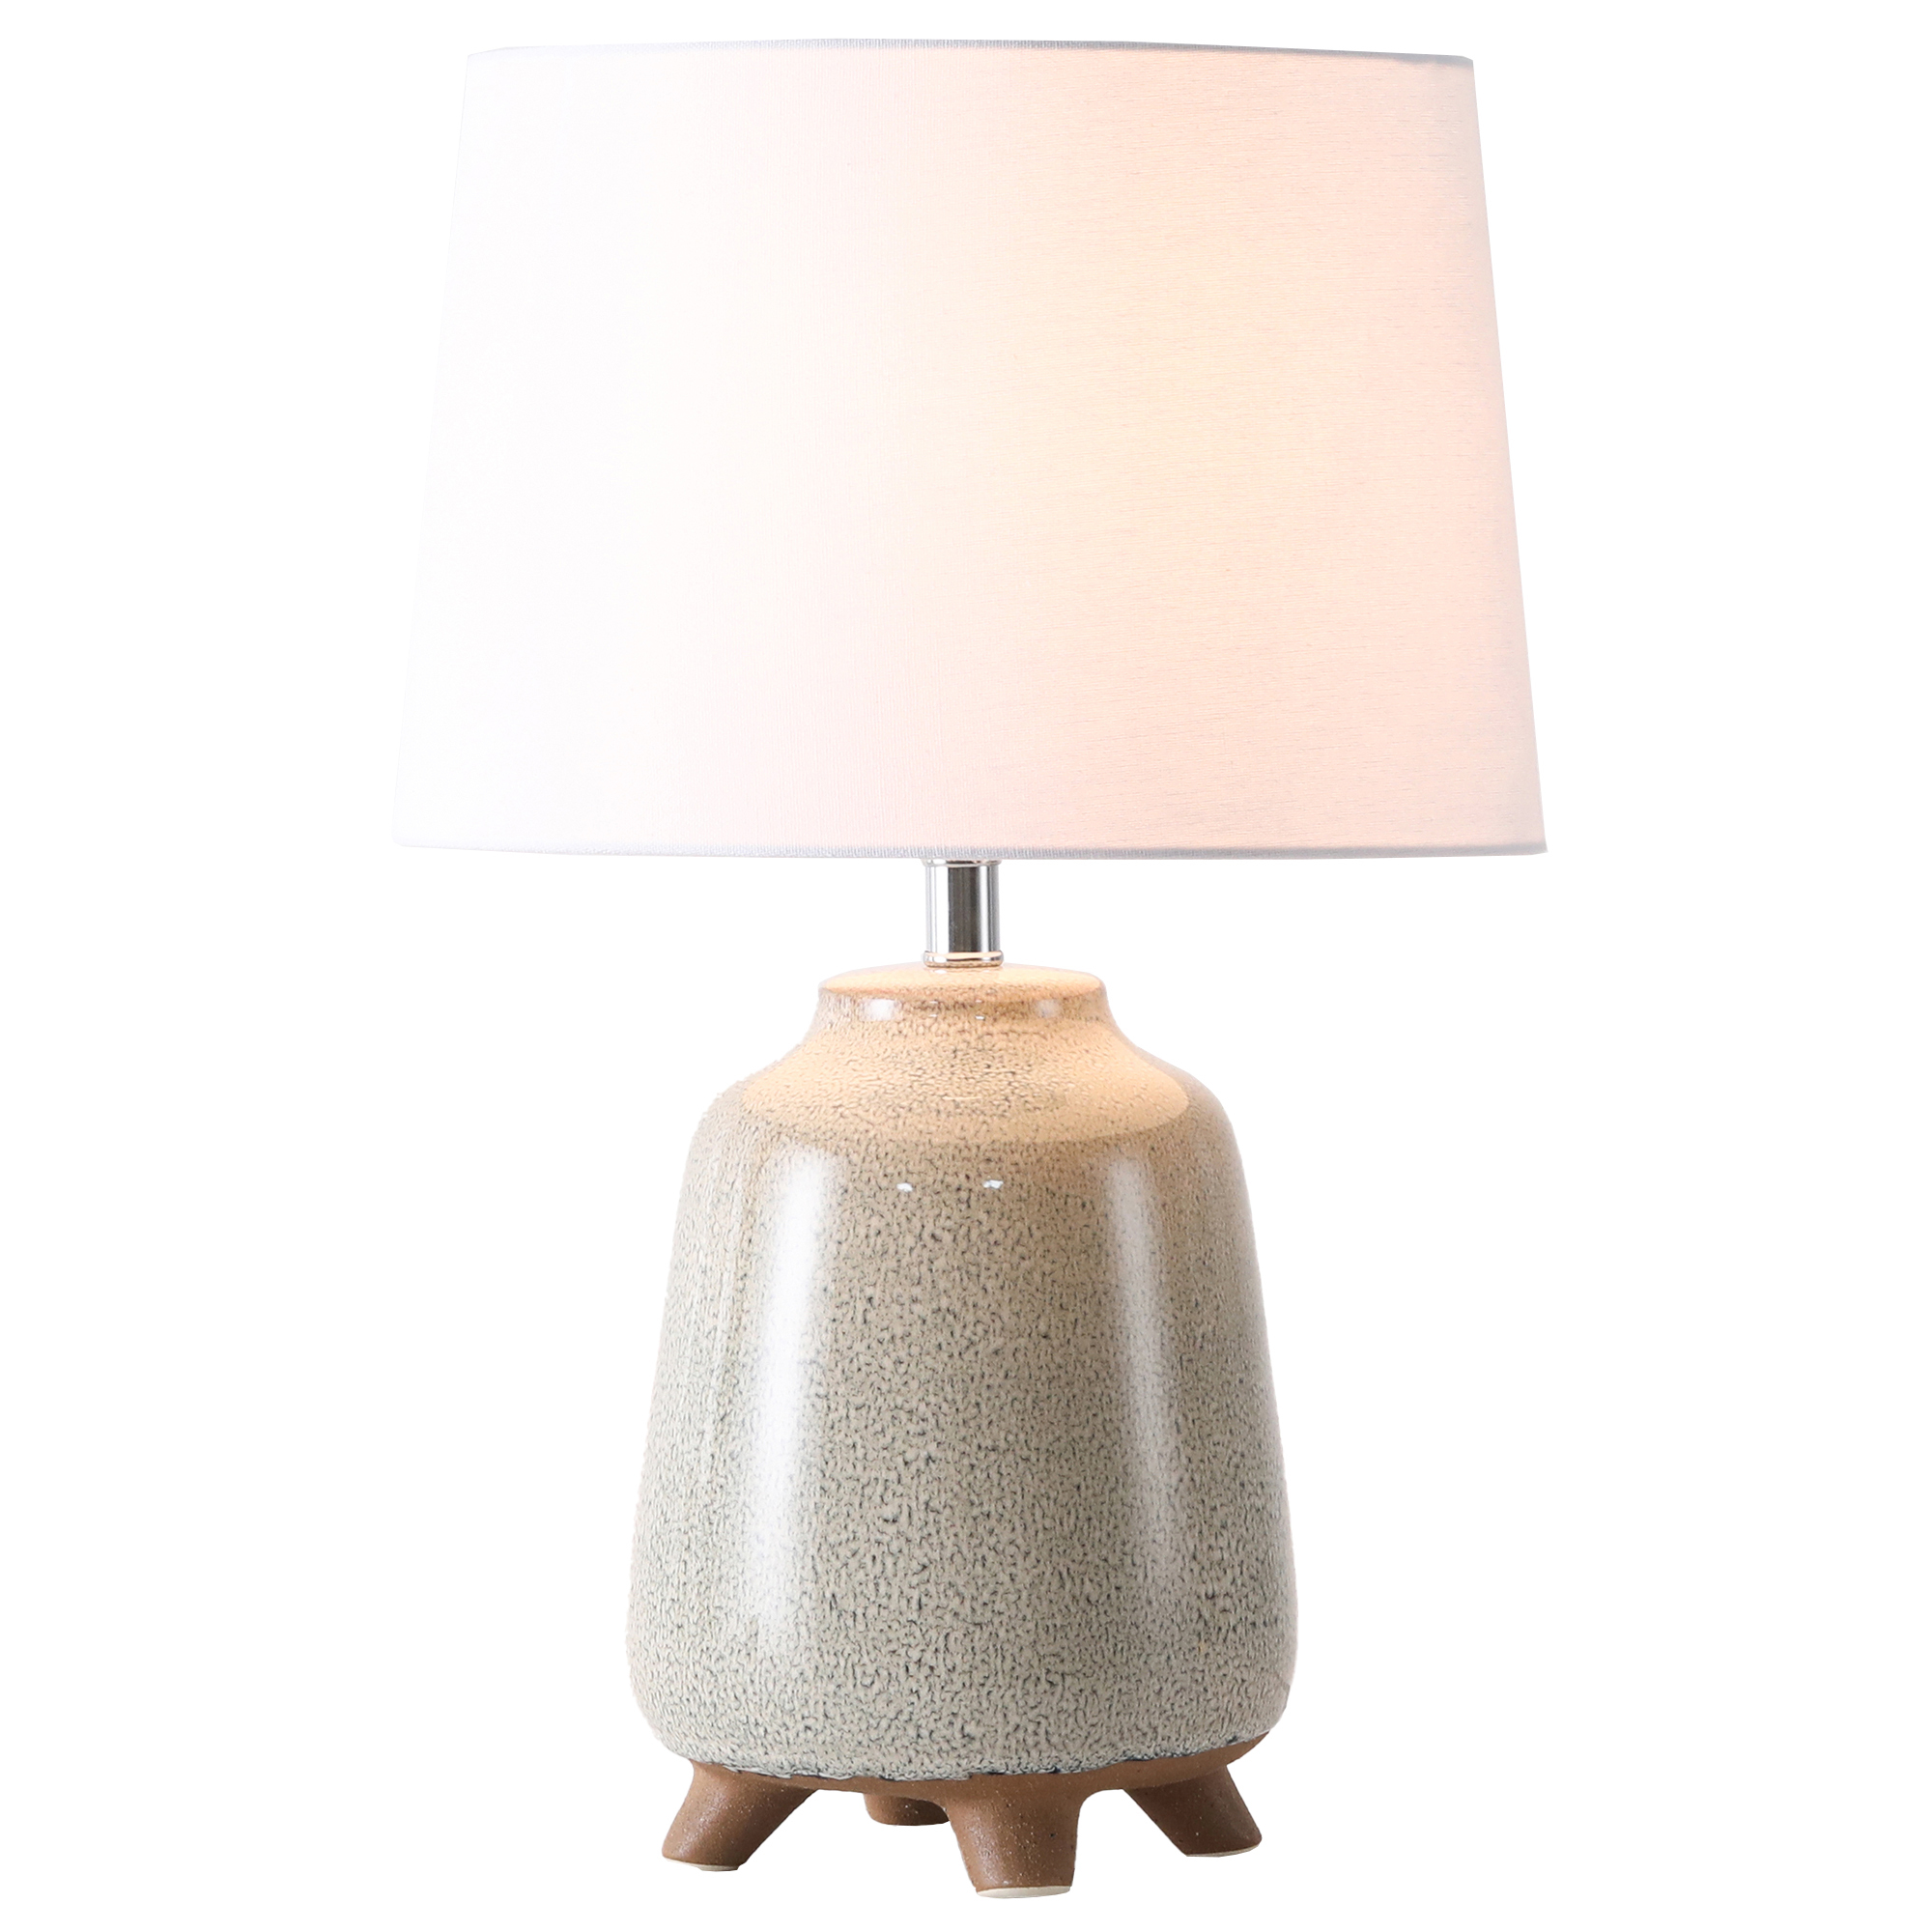 Temple Webster Cream Orion Ceramic Table Lamp Reviews